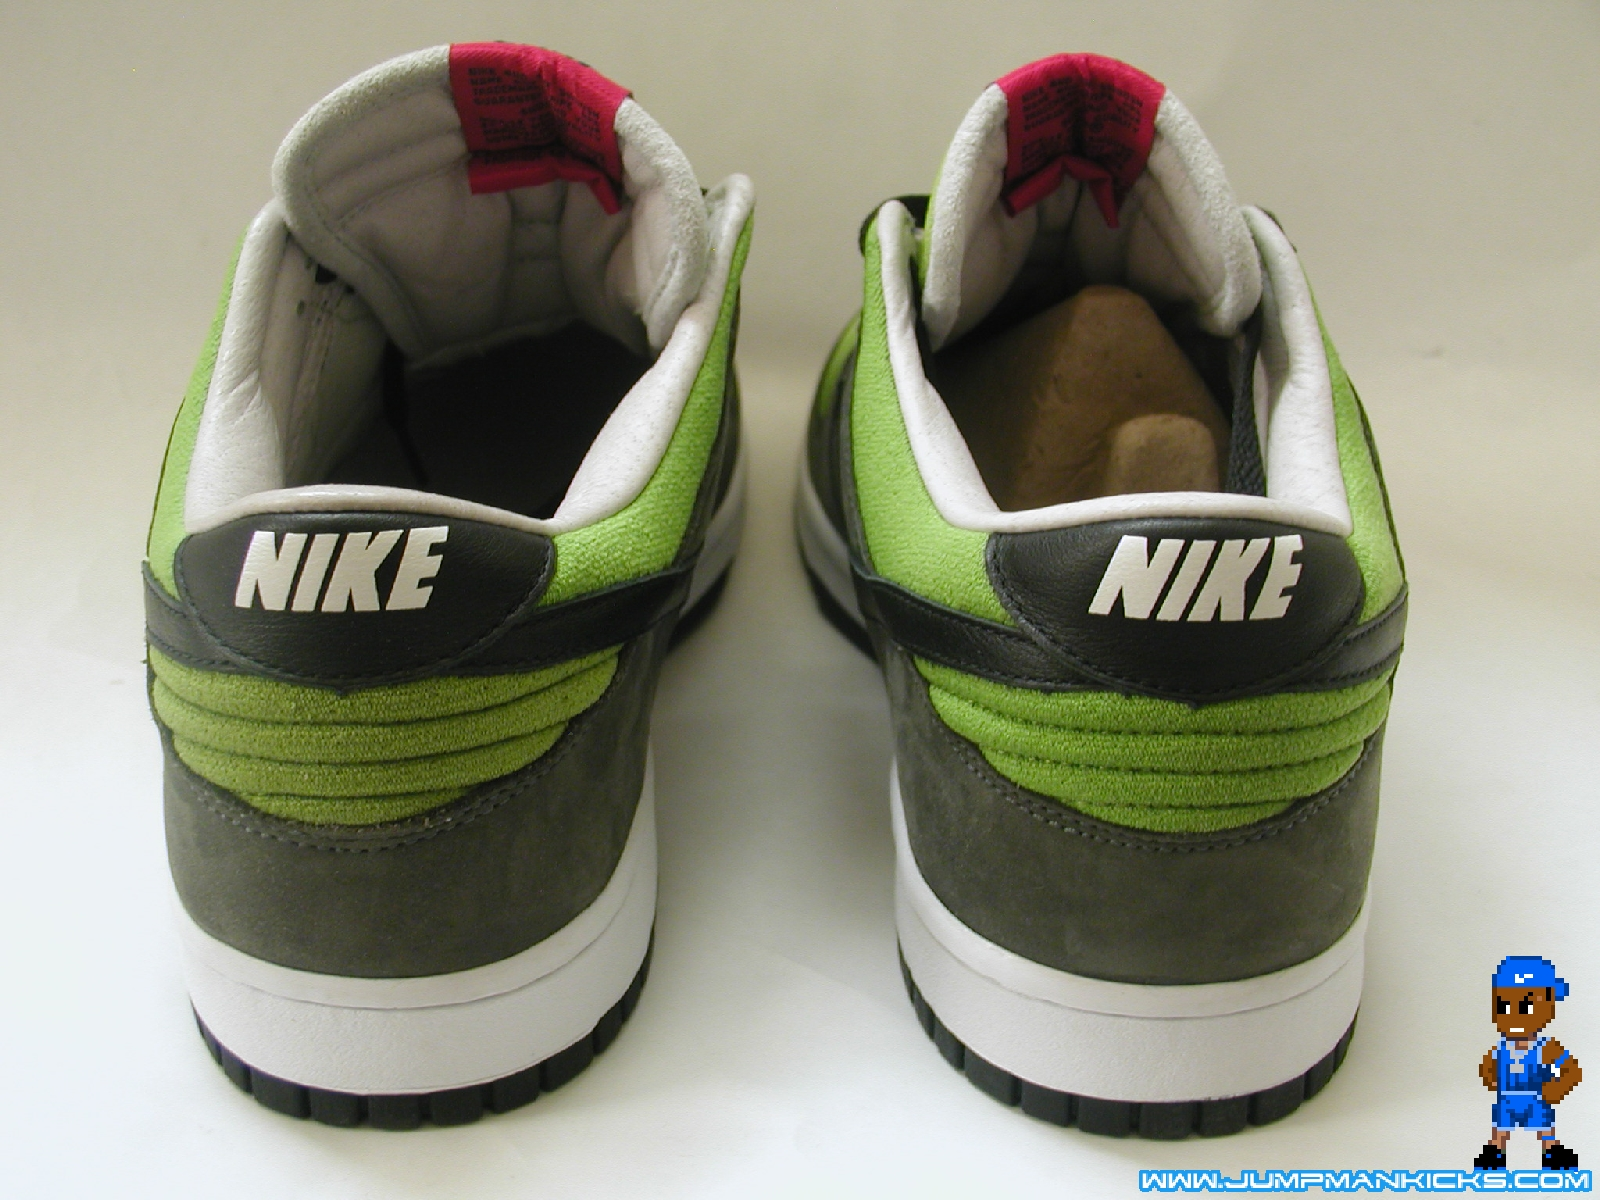 super popular 142b1 54b51 ... new style nike dunk kermit the frog index of shoegallery dunk gr kermit  866ab 37a8a